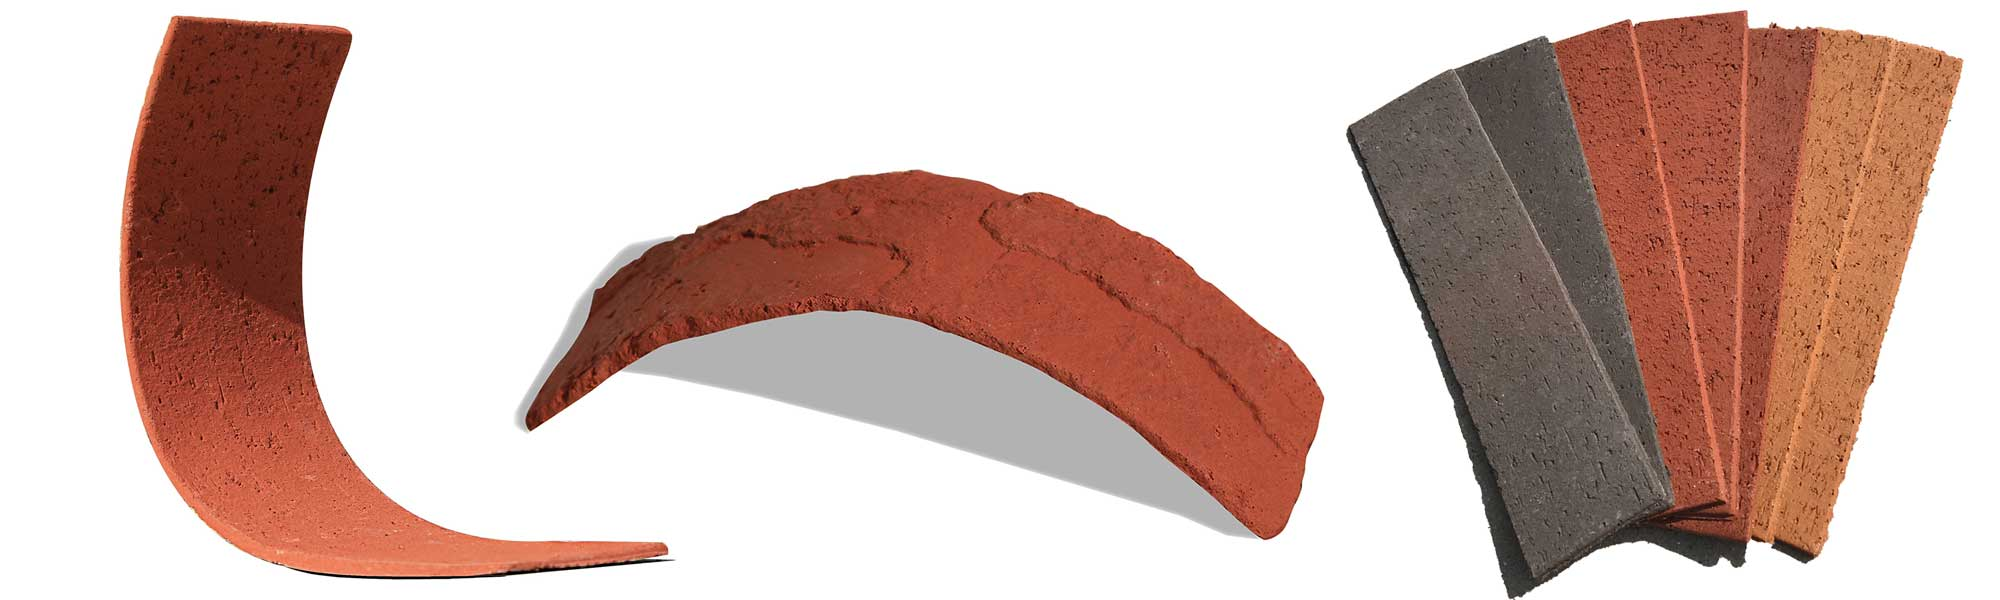 Flexible brick slips